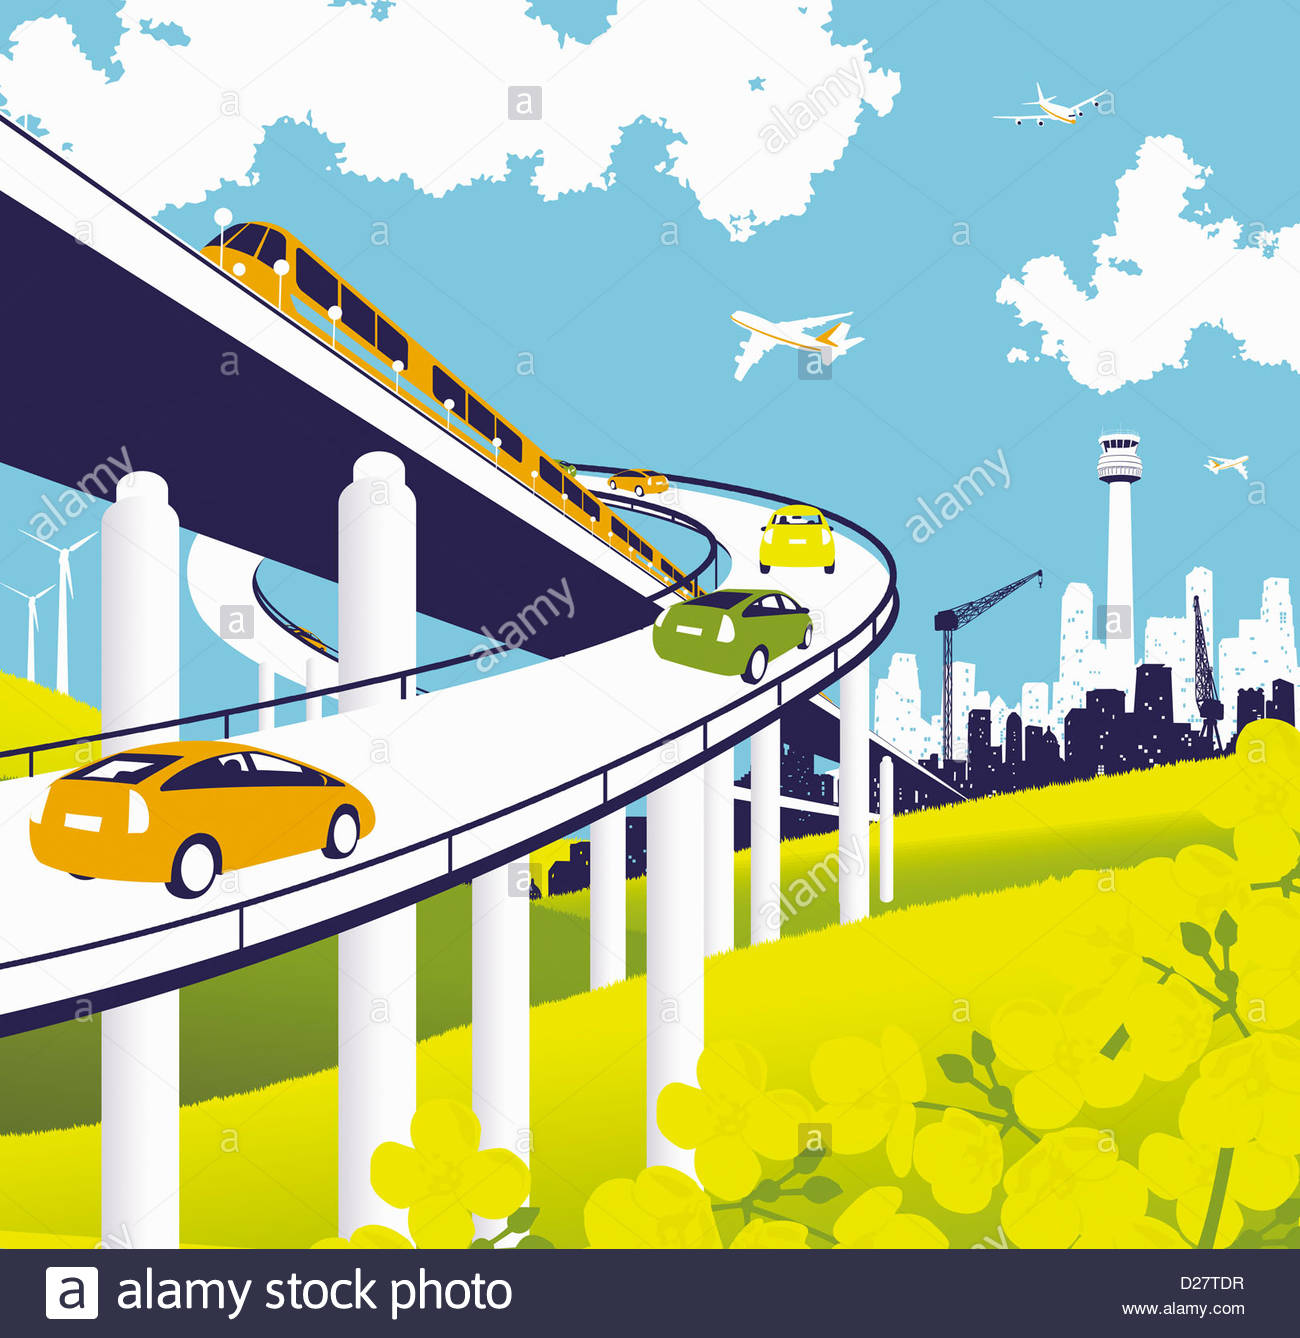 Elevated road and rail with train, cars, and airplanes - Stock Image